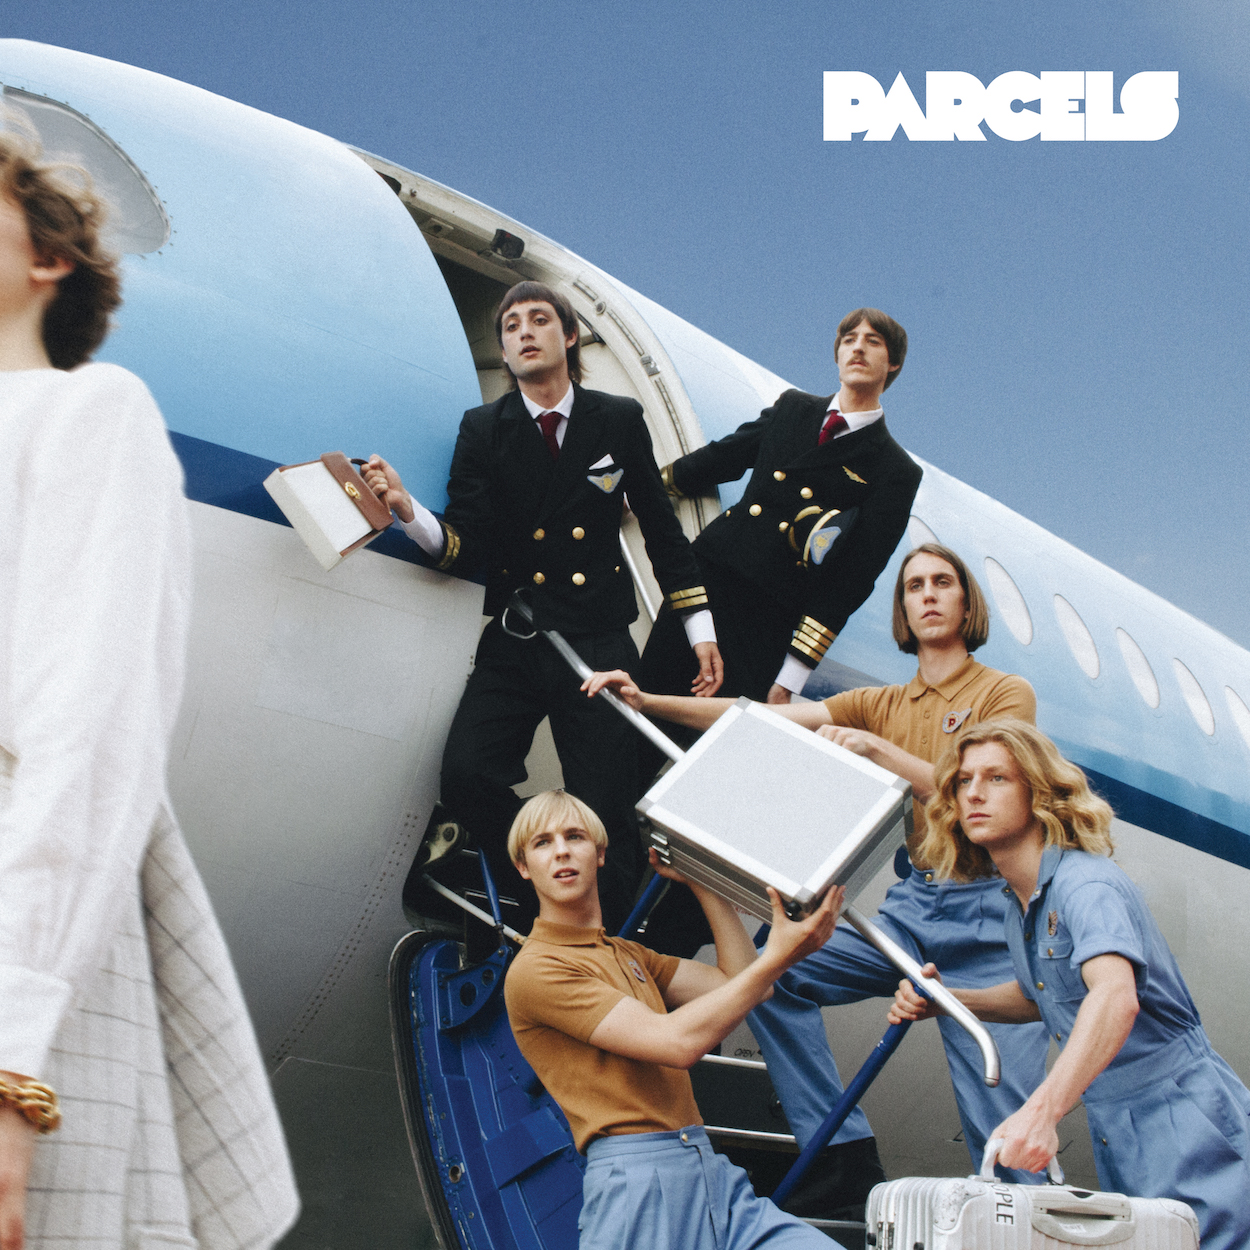 Parcels album cover